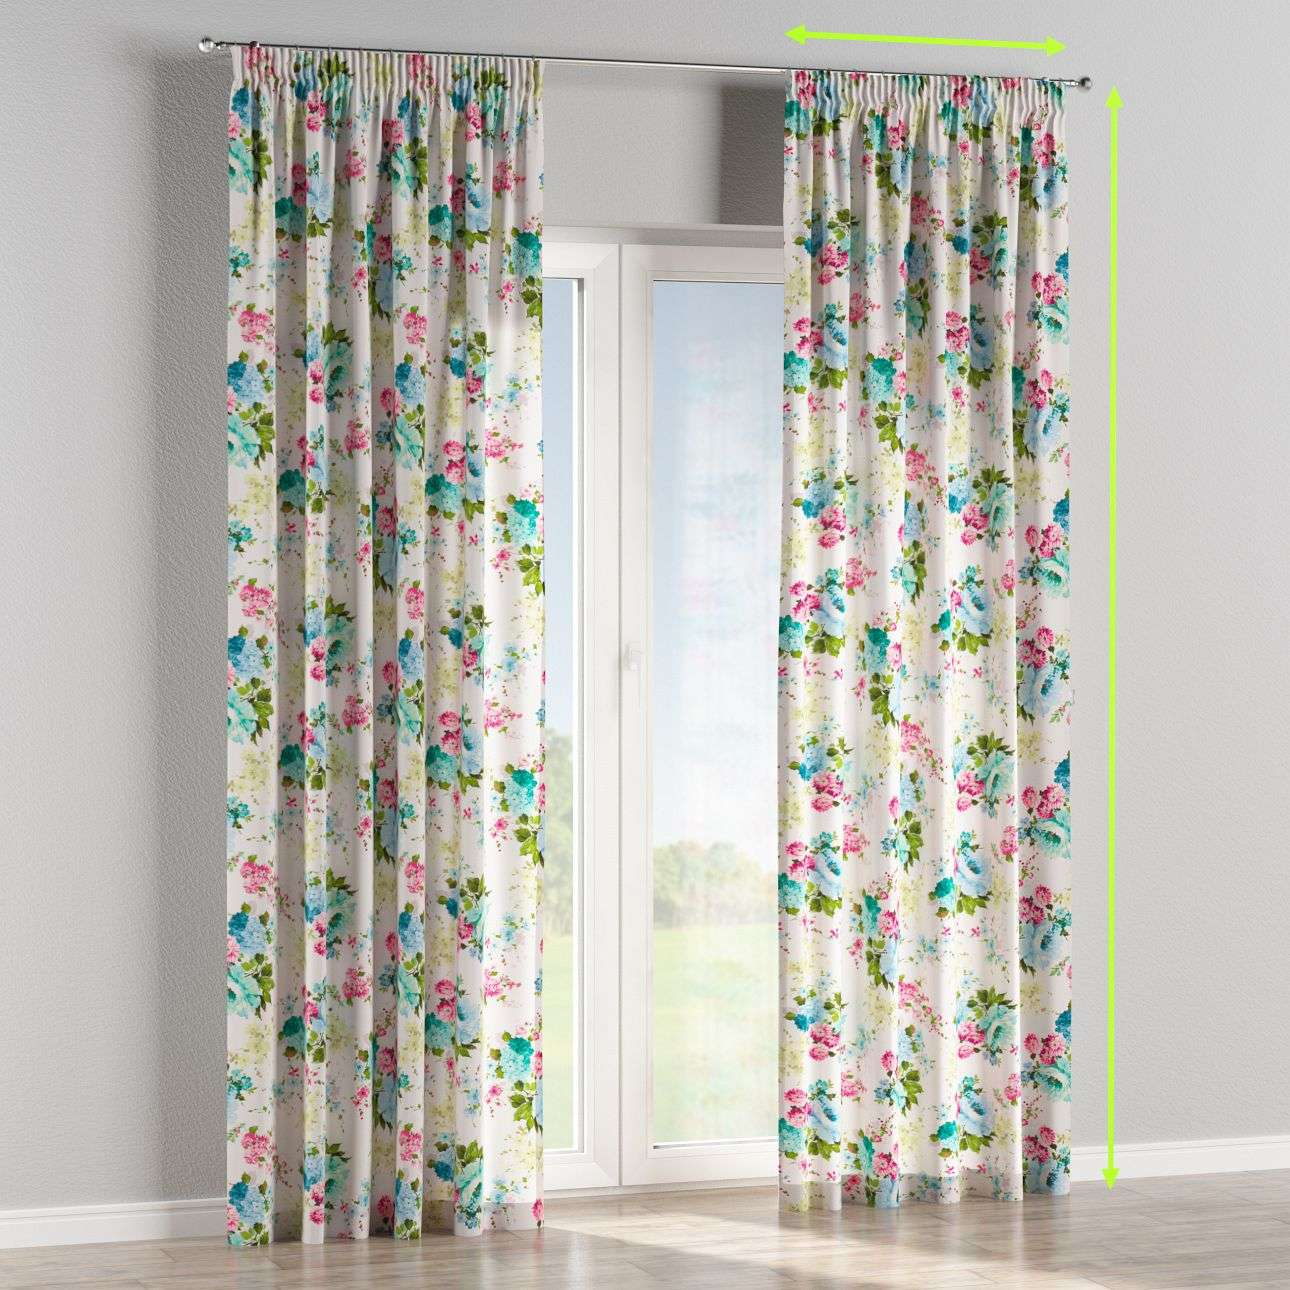 Pencil pleat lined curtains in collection Monet, fabric: 140-02